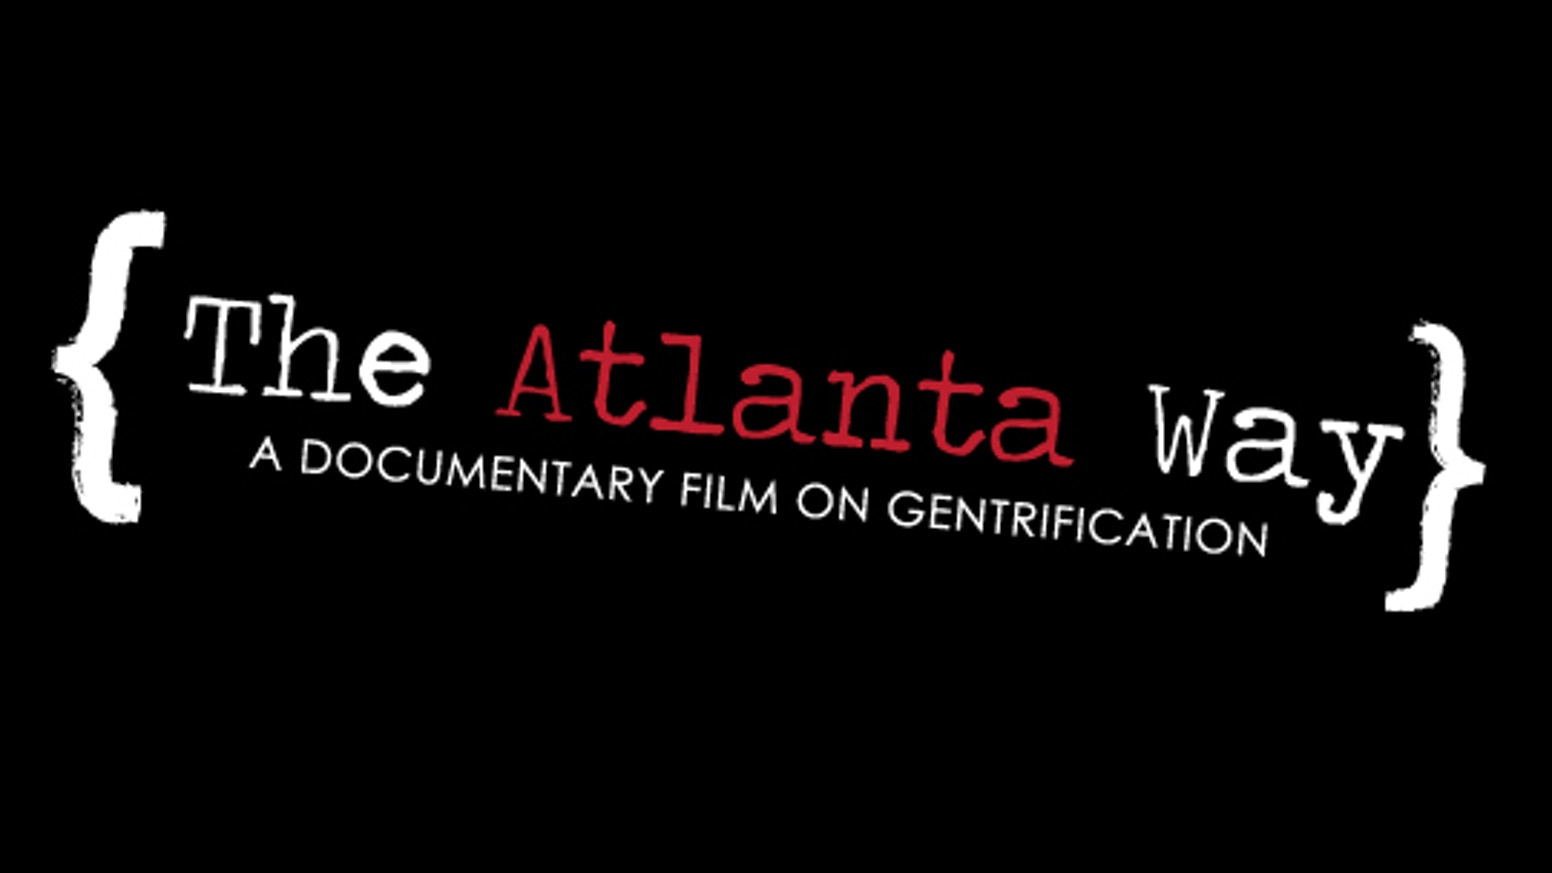 The Atlanta Way is a documentary on gentrification set during the last days of public housing in Atlanta.